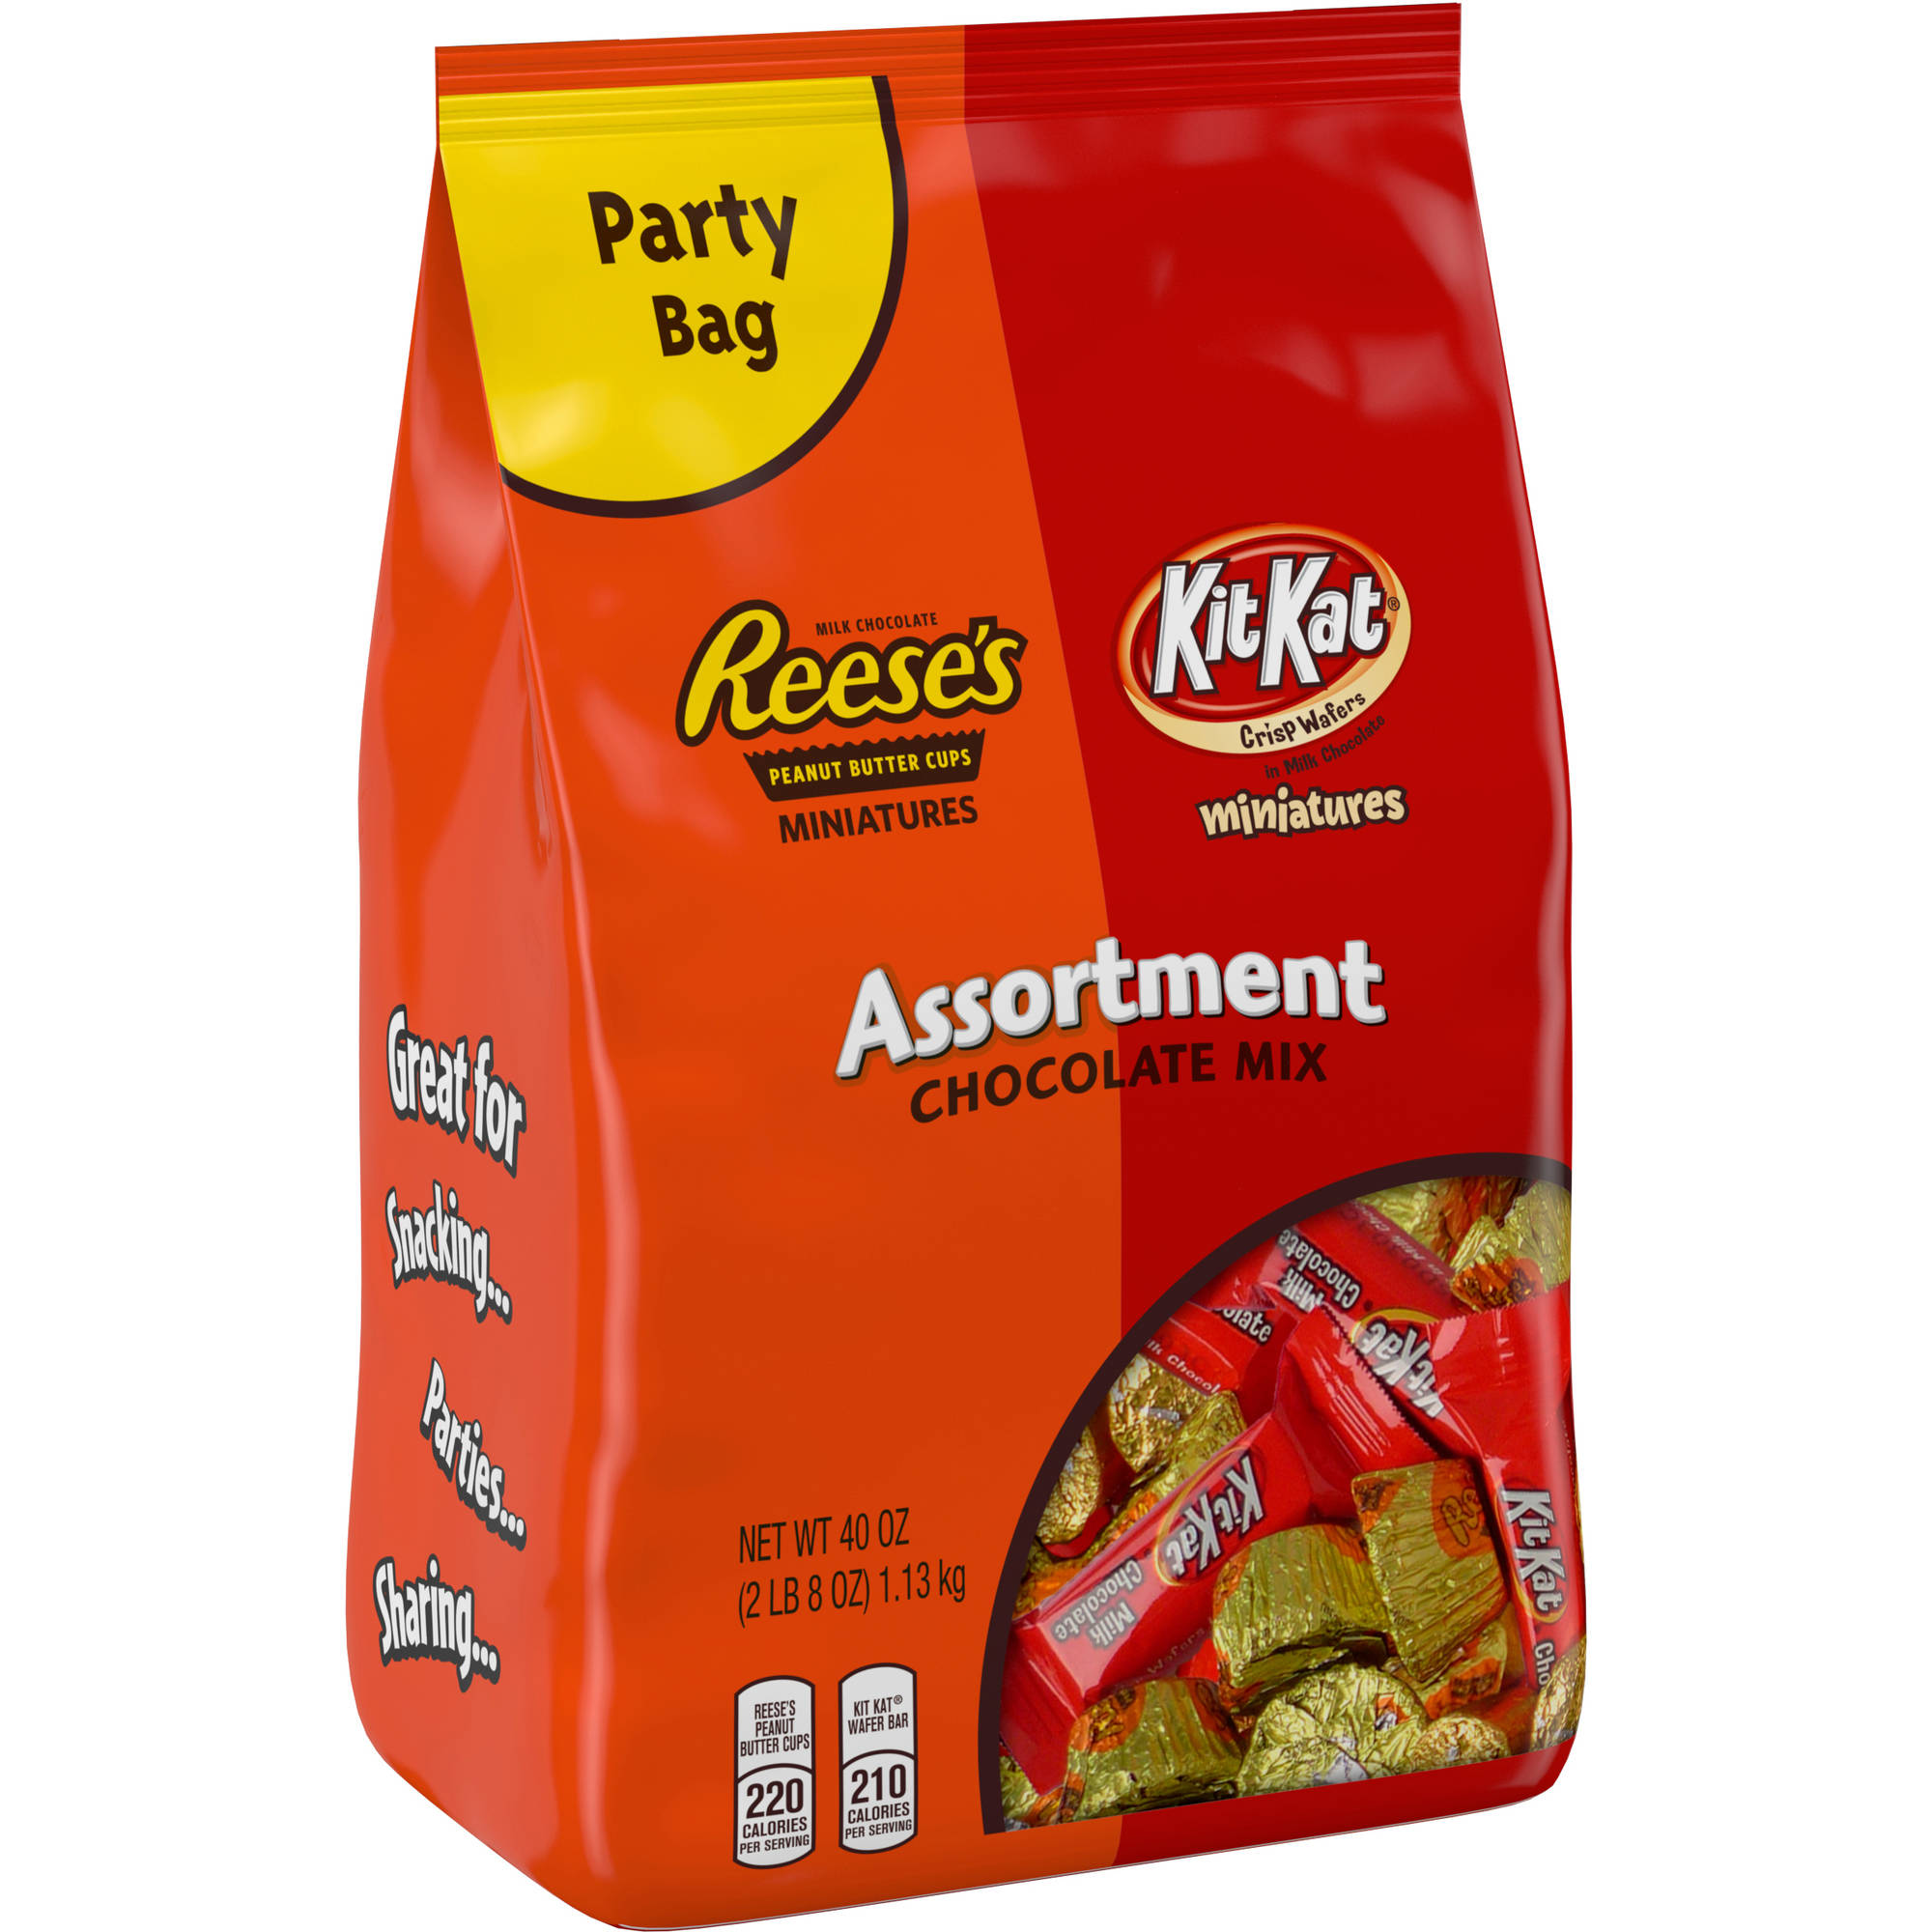 Reese's Kit Kat Assortment Peanut Butter Cups, 2.5 lb